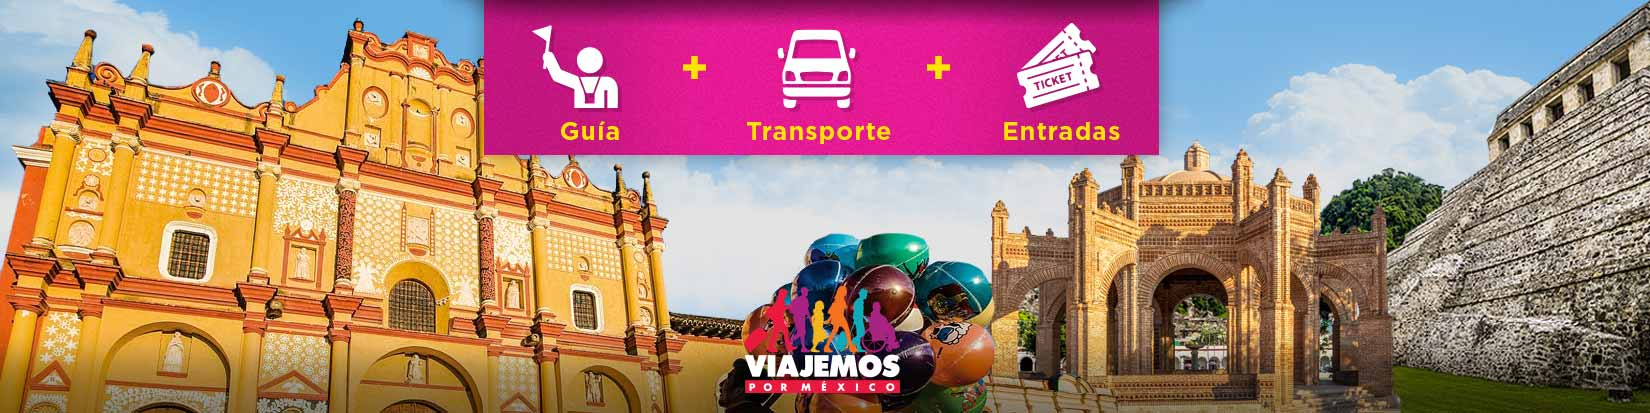 Tours / Excursiones en Chiapas de hasta 10 hrs